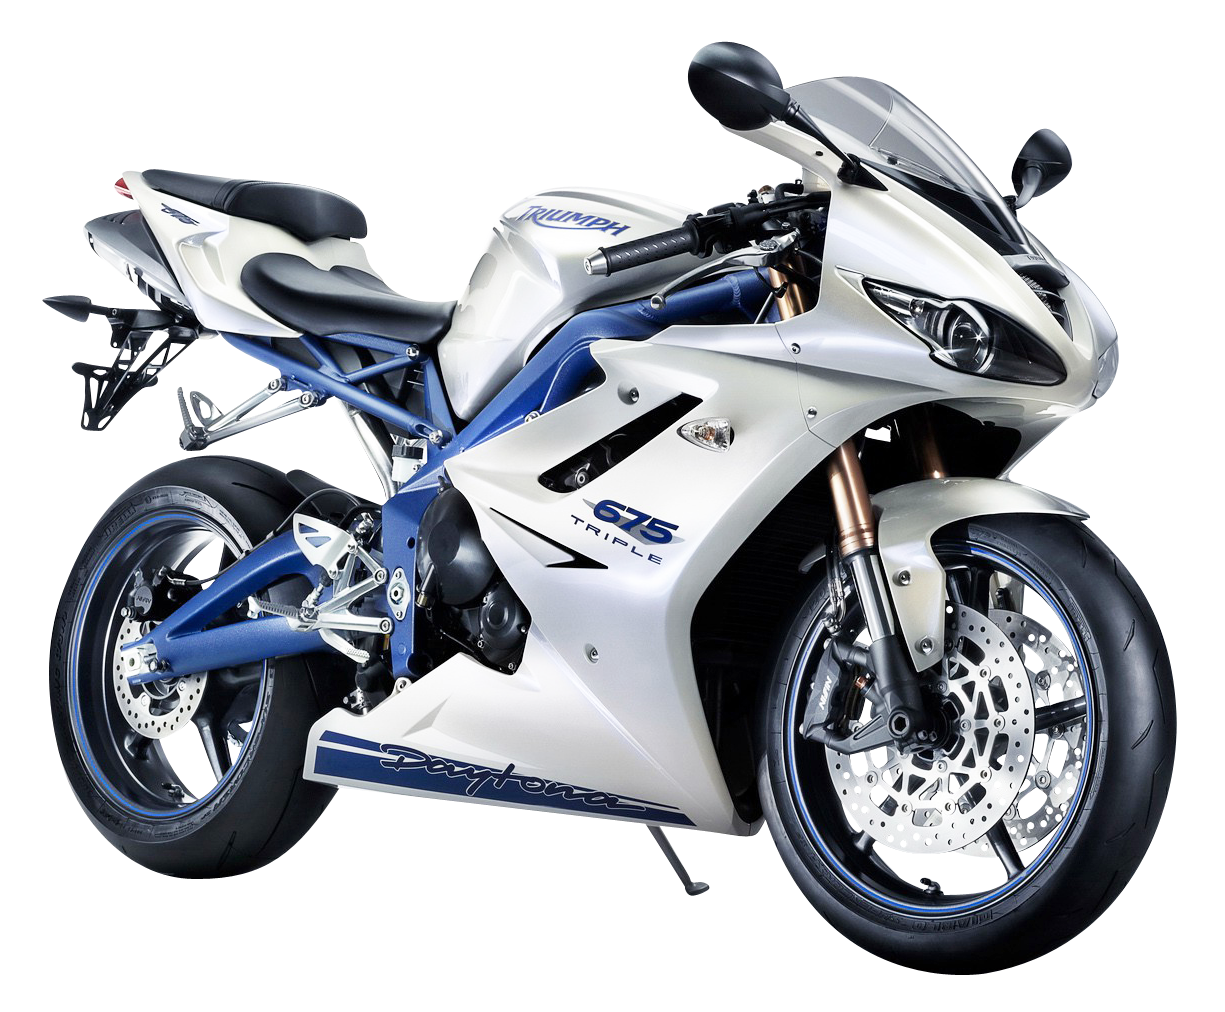 Png images pngpix daytona. Motorcycle clipart triumph motorcycle